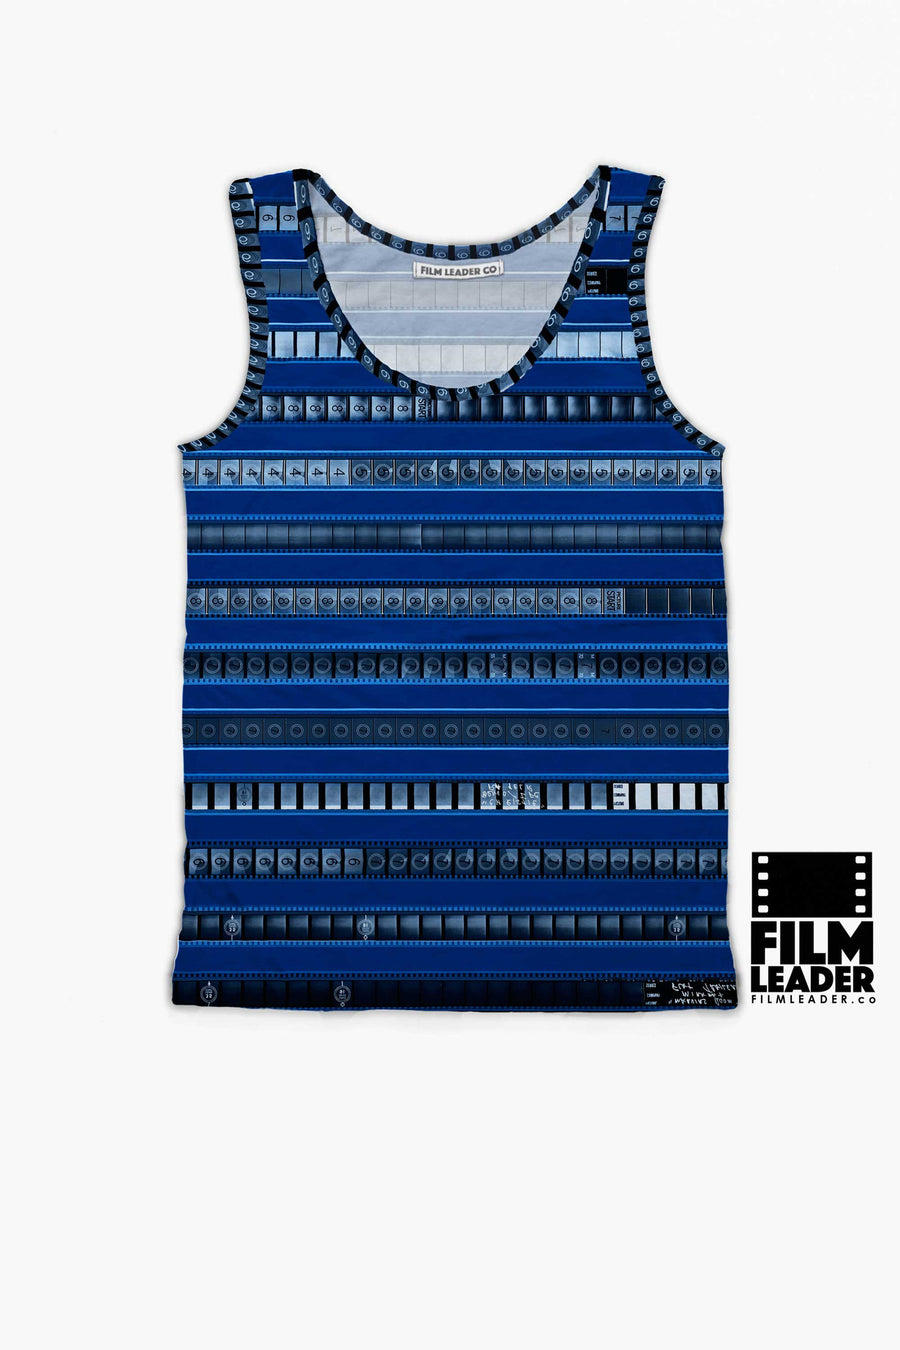 Tank Top with B&W 35mm Leader Stripes on Blue